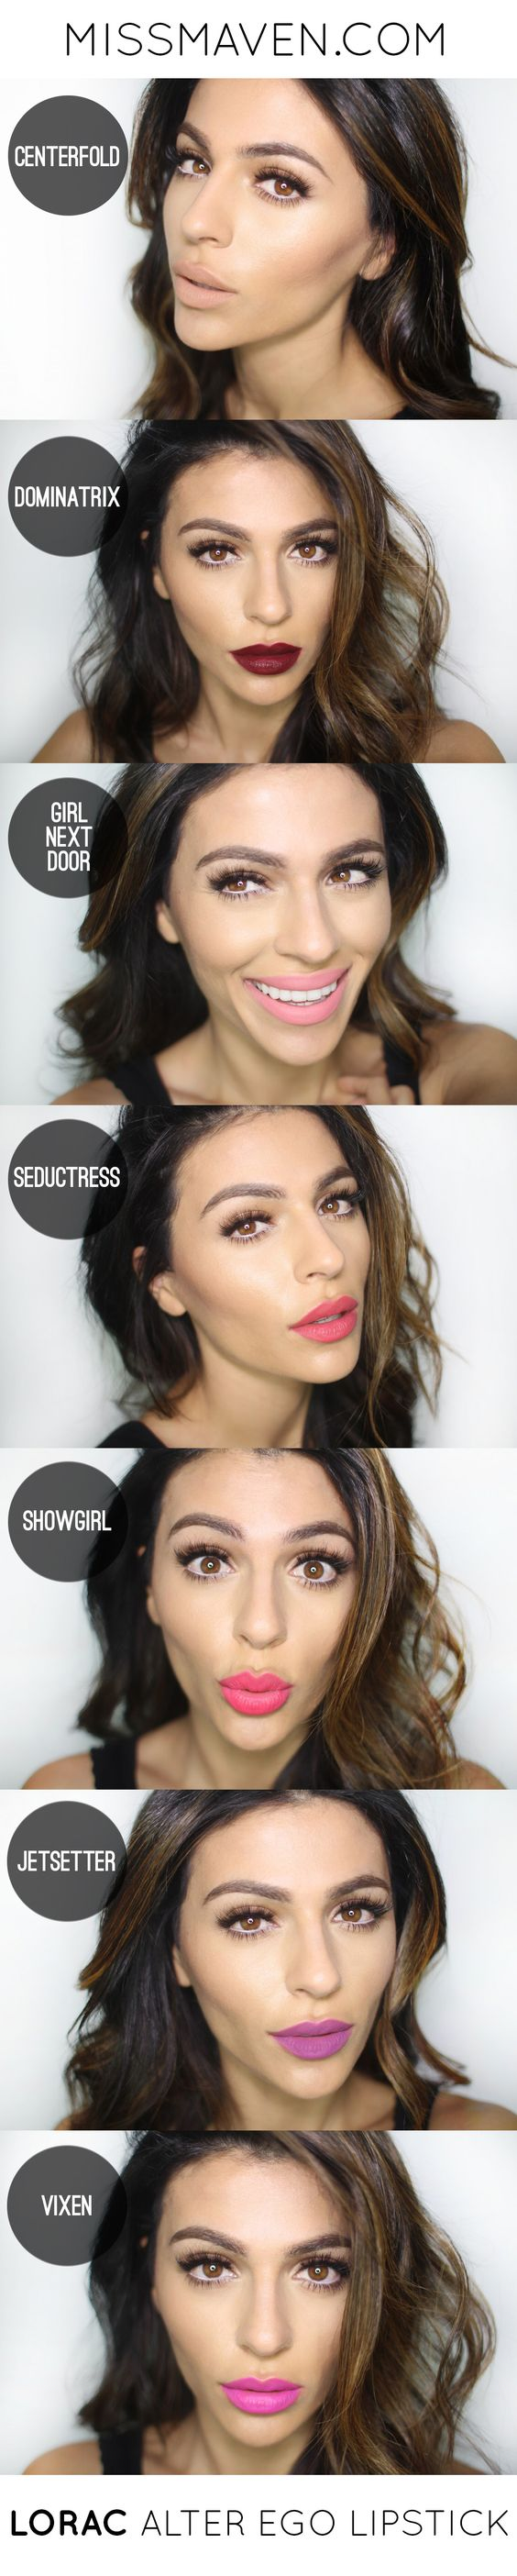 @teni panosian shows us some swatches from LORAC's #AlterEgoLipstick!: